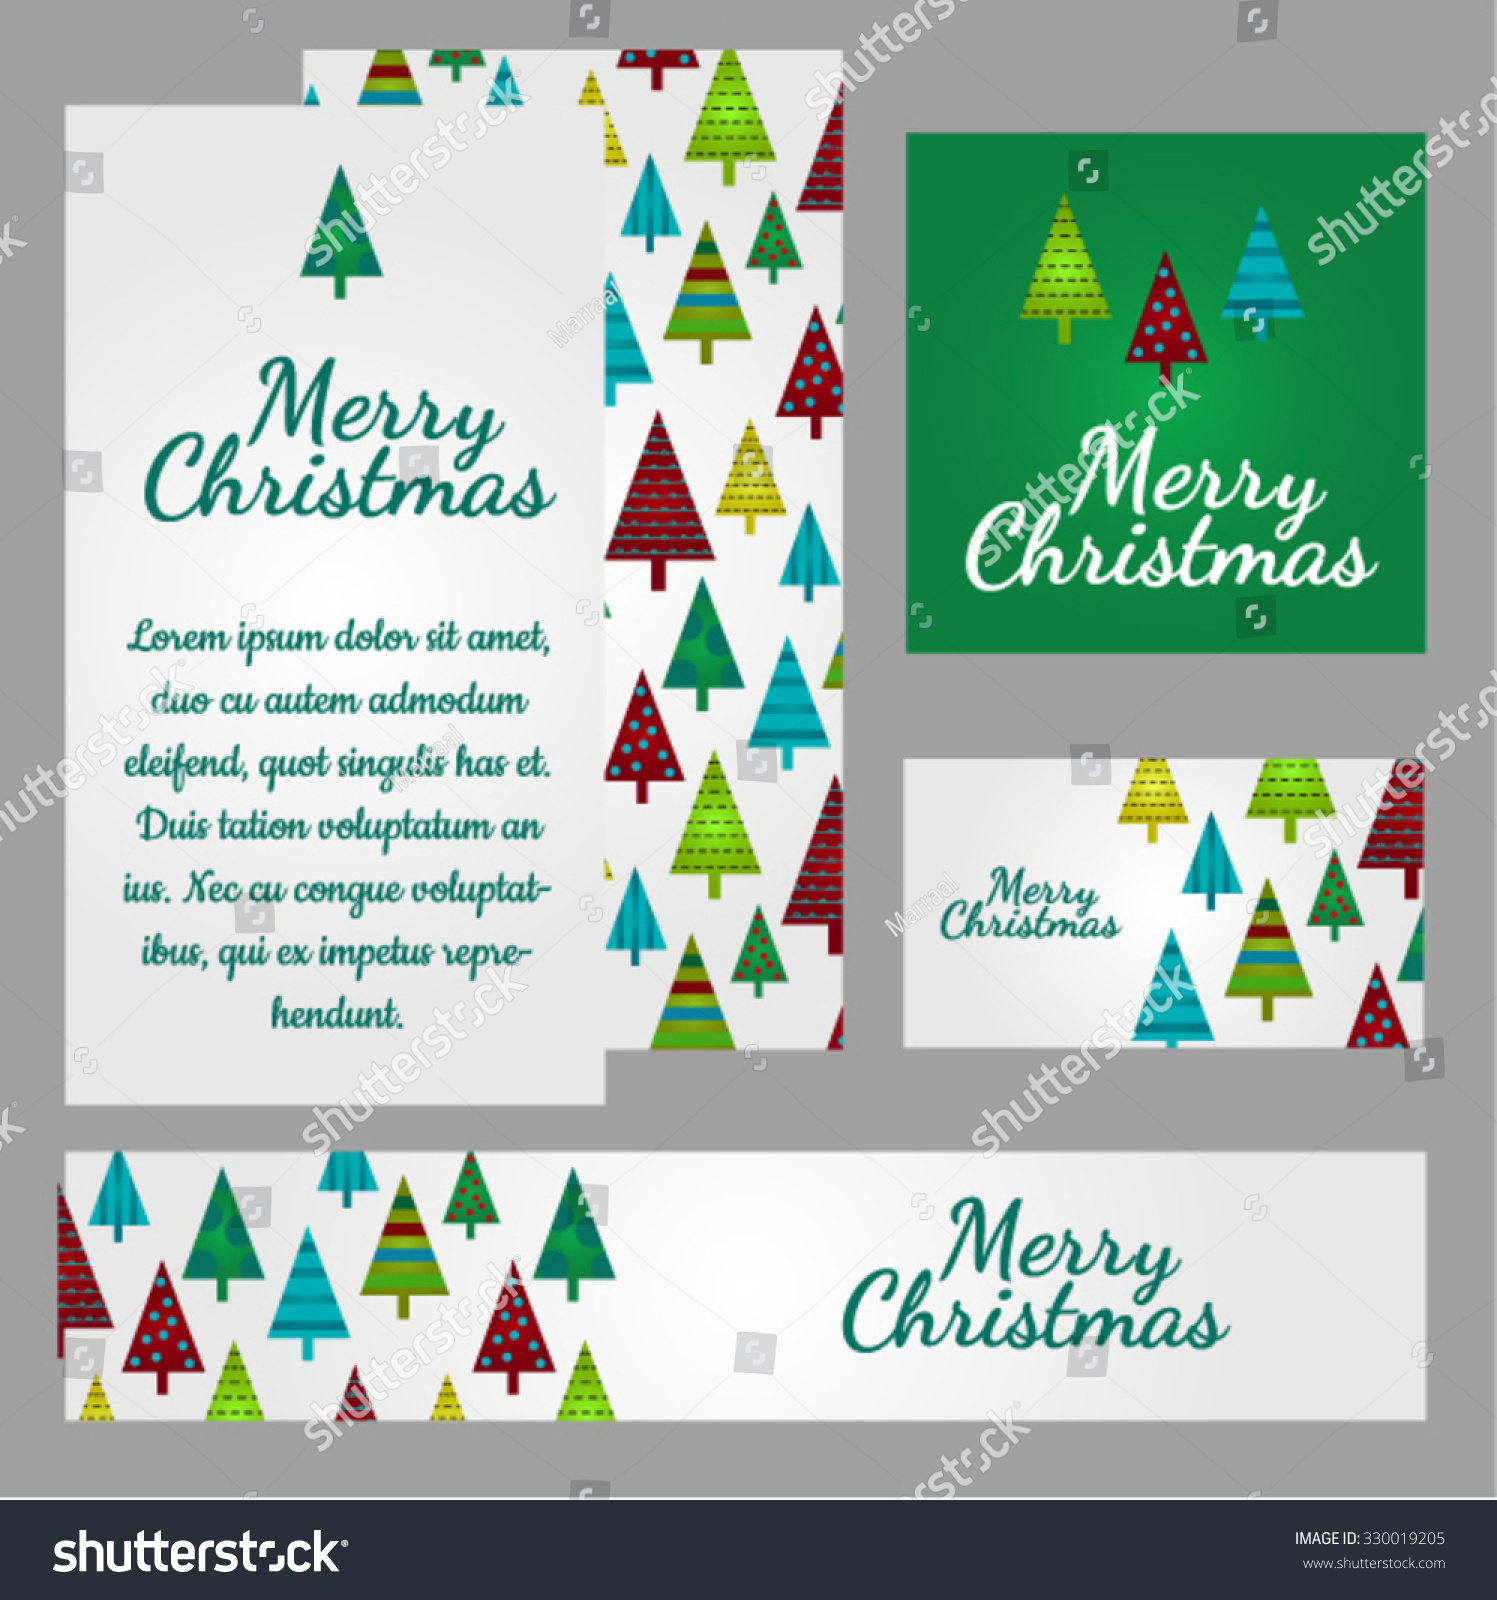 Christmas sketch space text texture funny stock vector 330019205 christmas sketch with space for text and texture of funny fir trees on a green and kristyandbryce Images